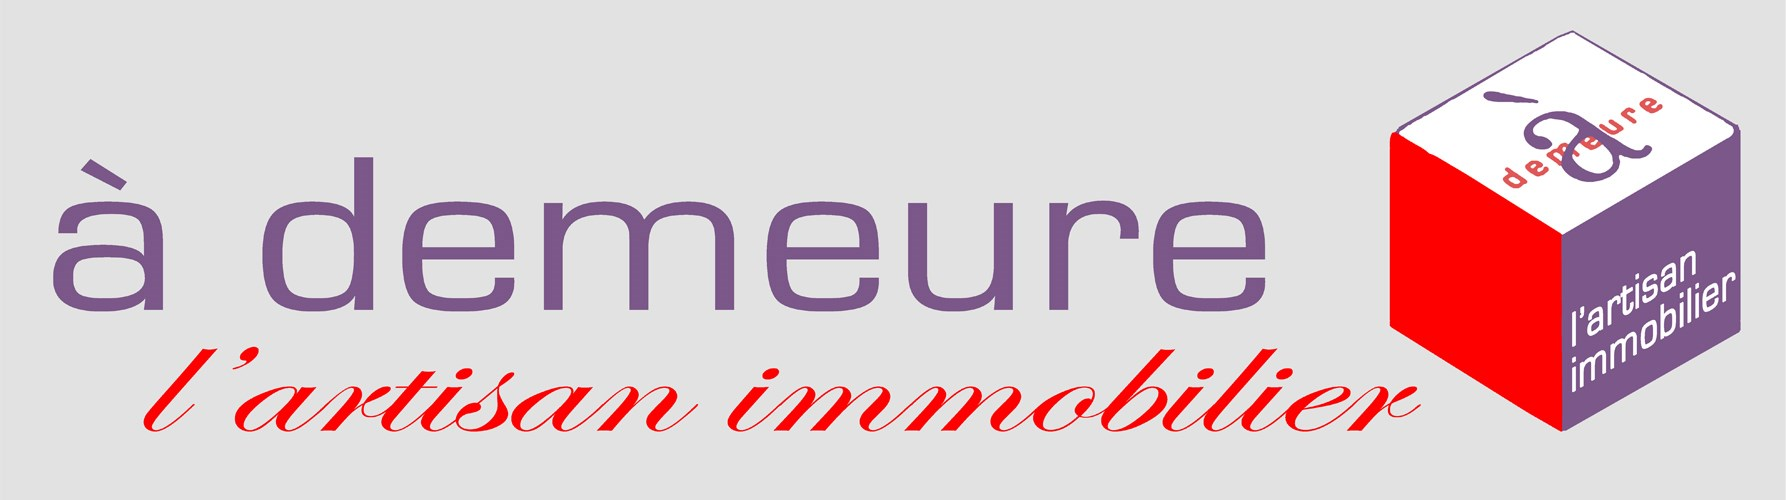 A demeure agence immobili re issy les moulineaux for Agence immobiliere qui accepte le cpas